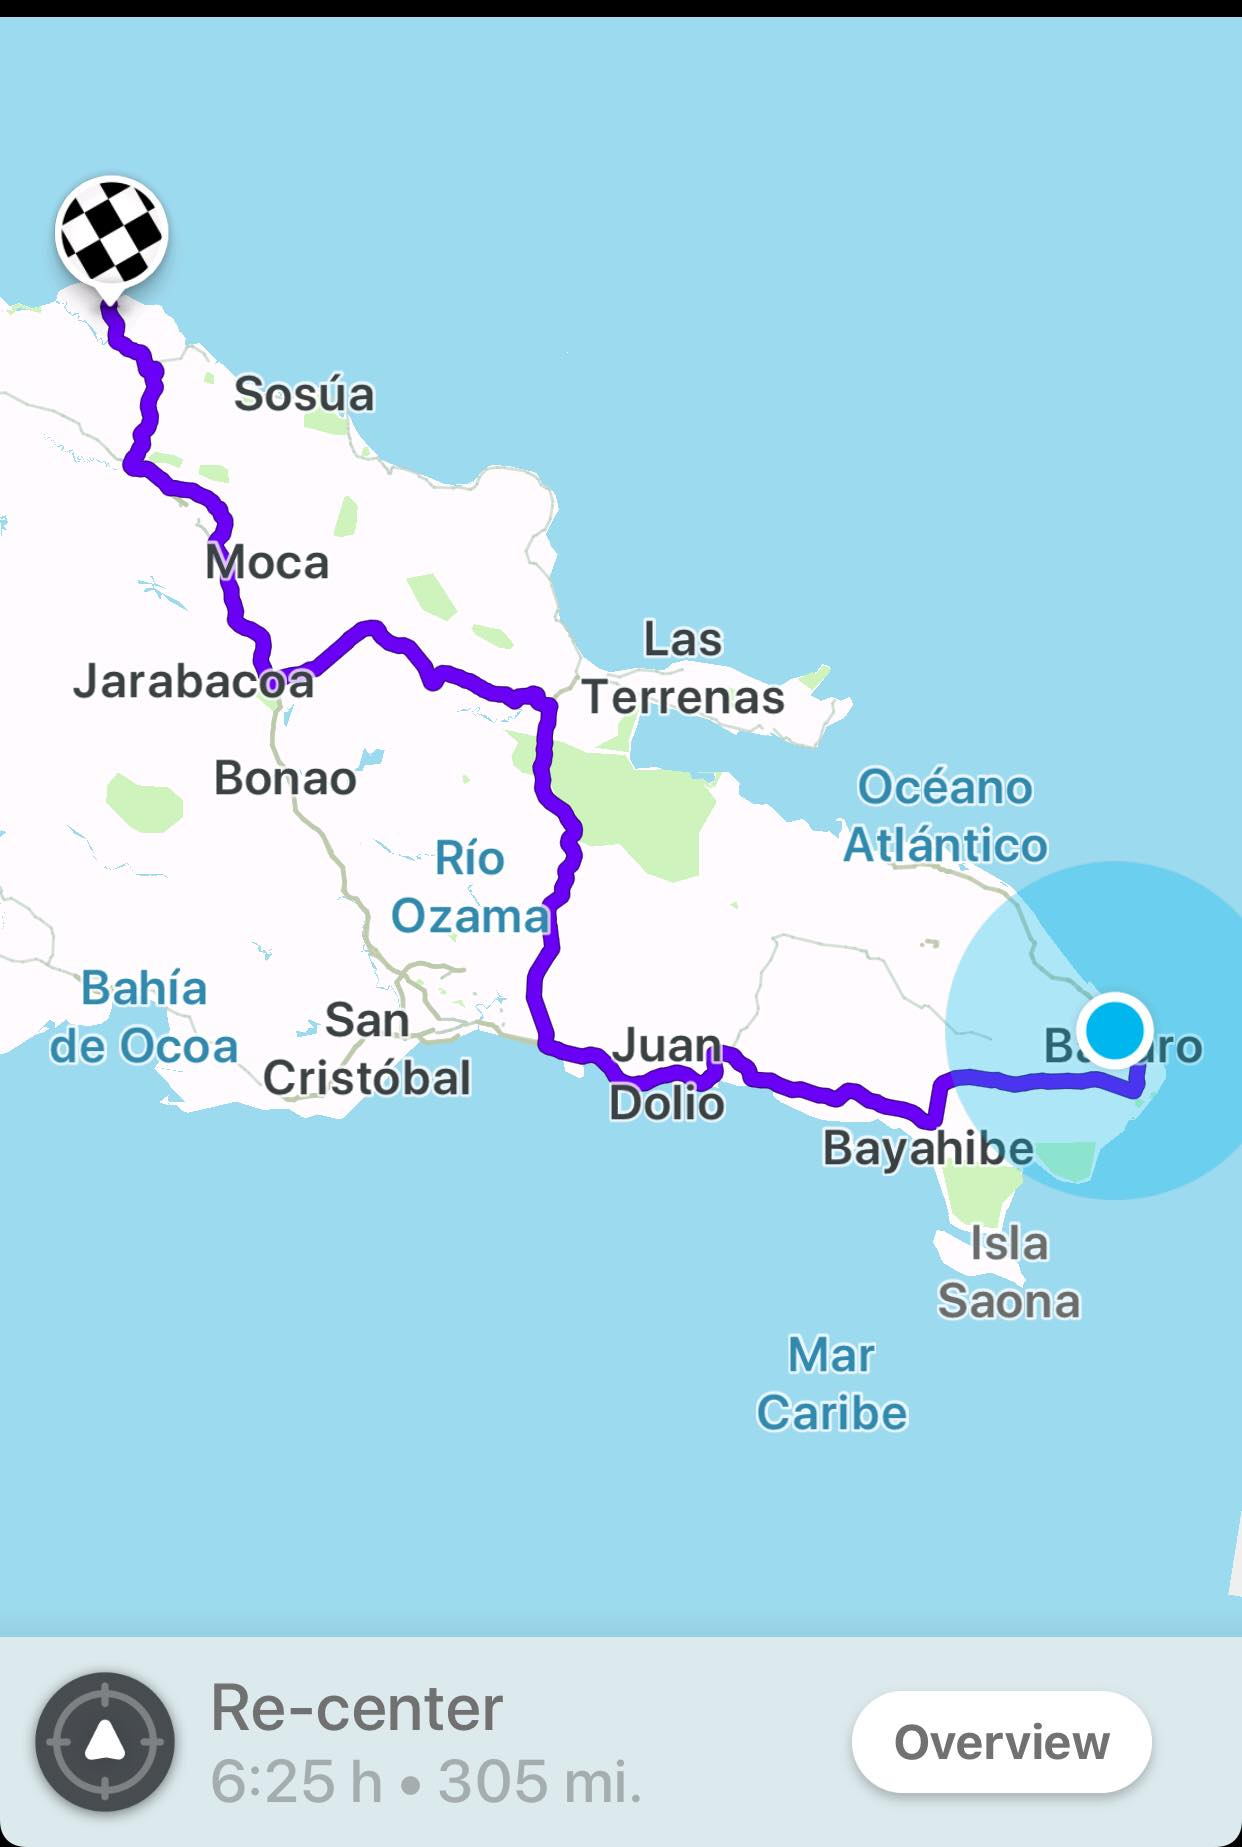 Sailing Life Day 57: Road Trip from Luperon to Punta Cana in Dominican Republic (Distance of 491 kms. in 6 hours time)